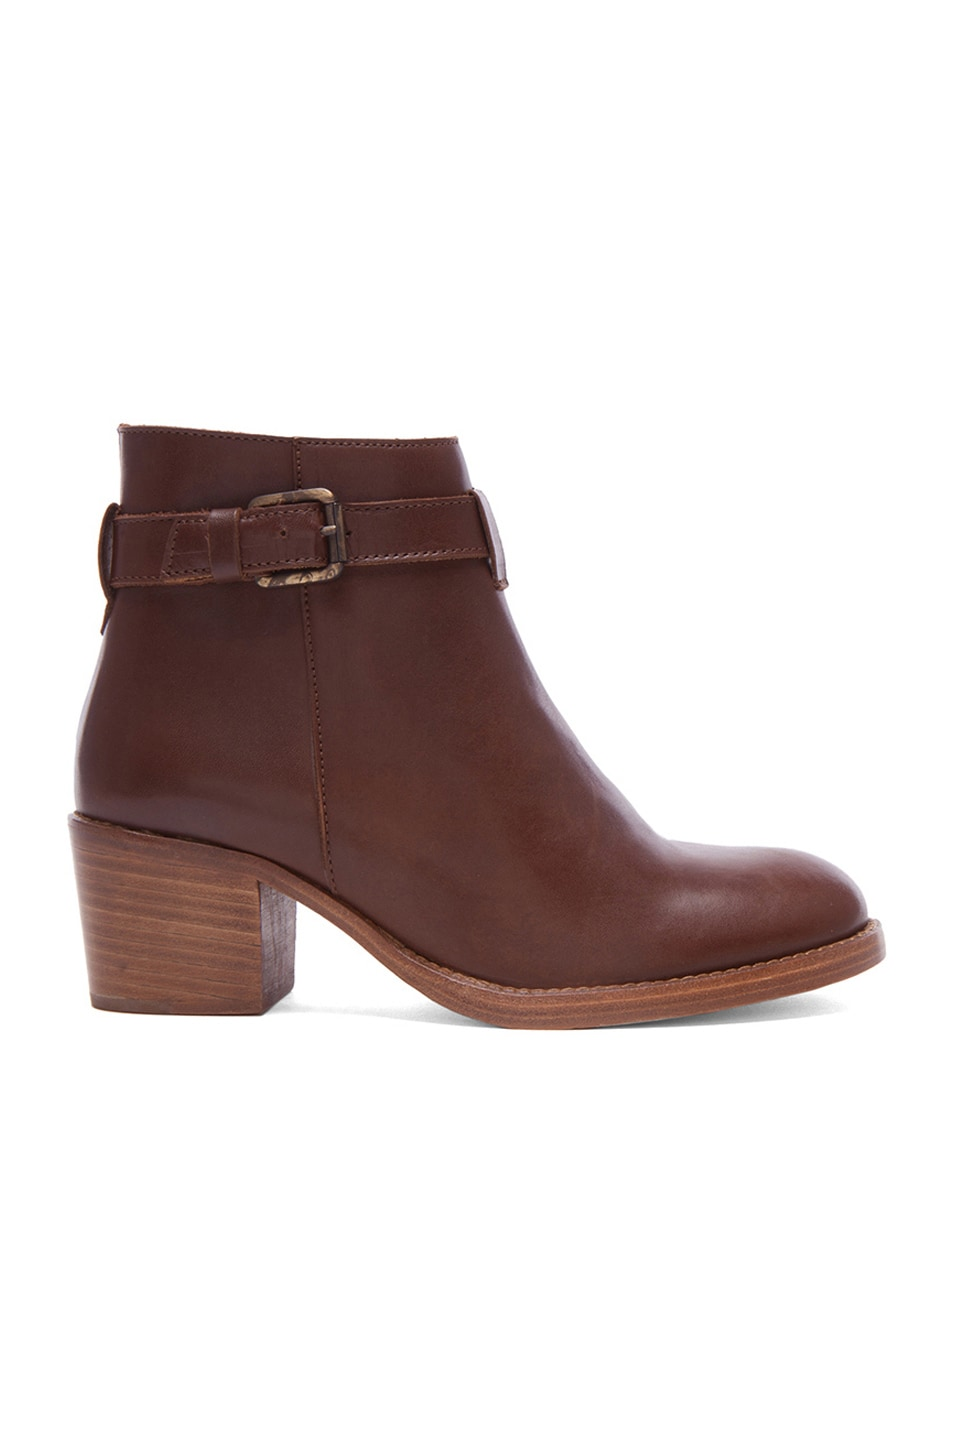 Image 1 of A.P.C. Joe Leather Boots in Marron